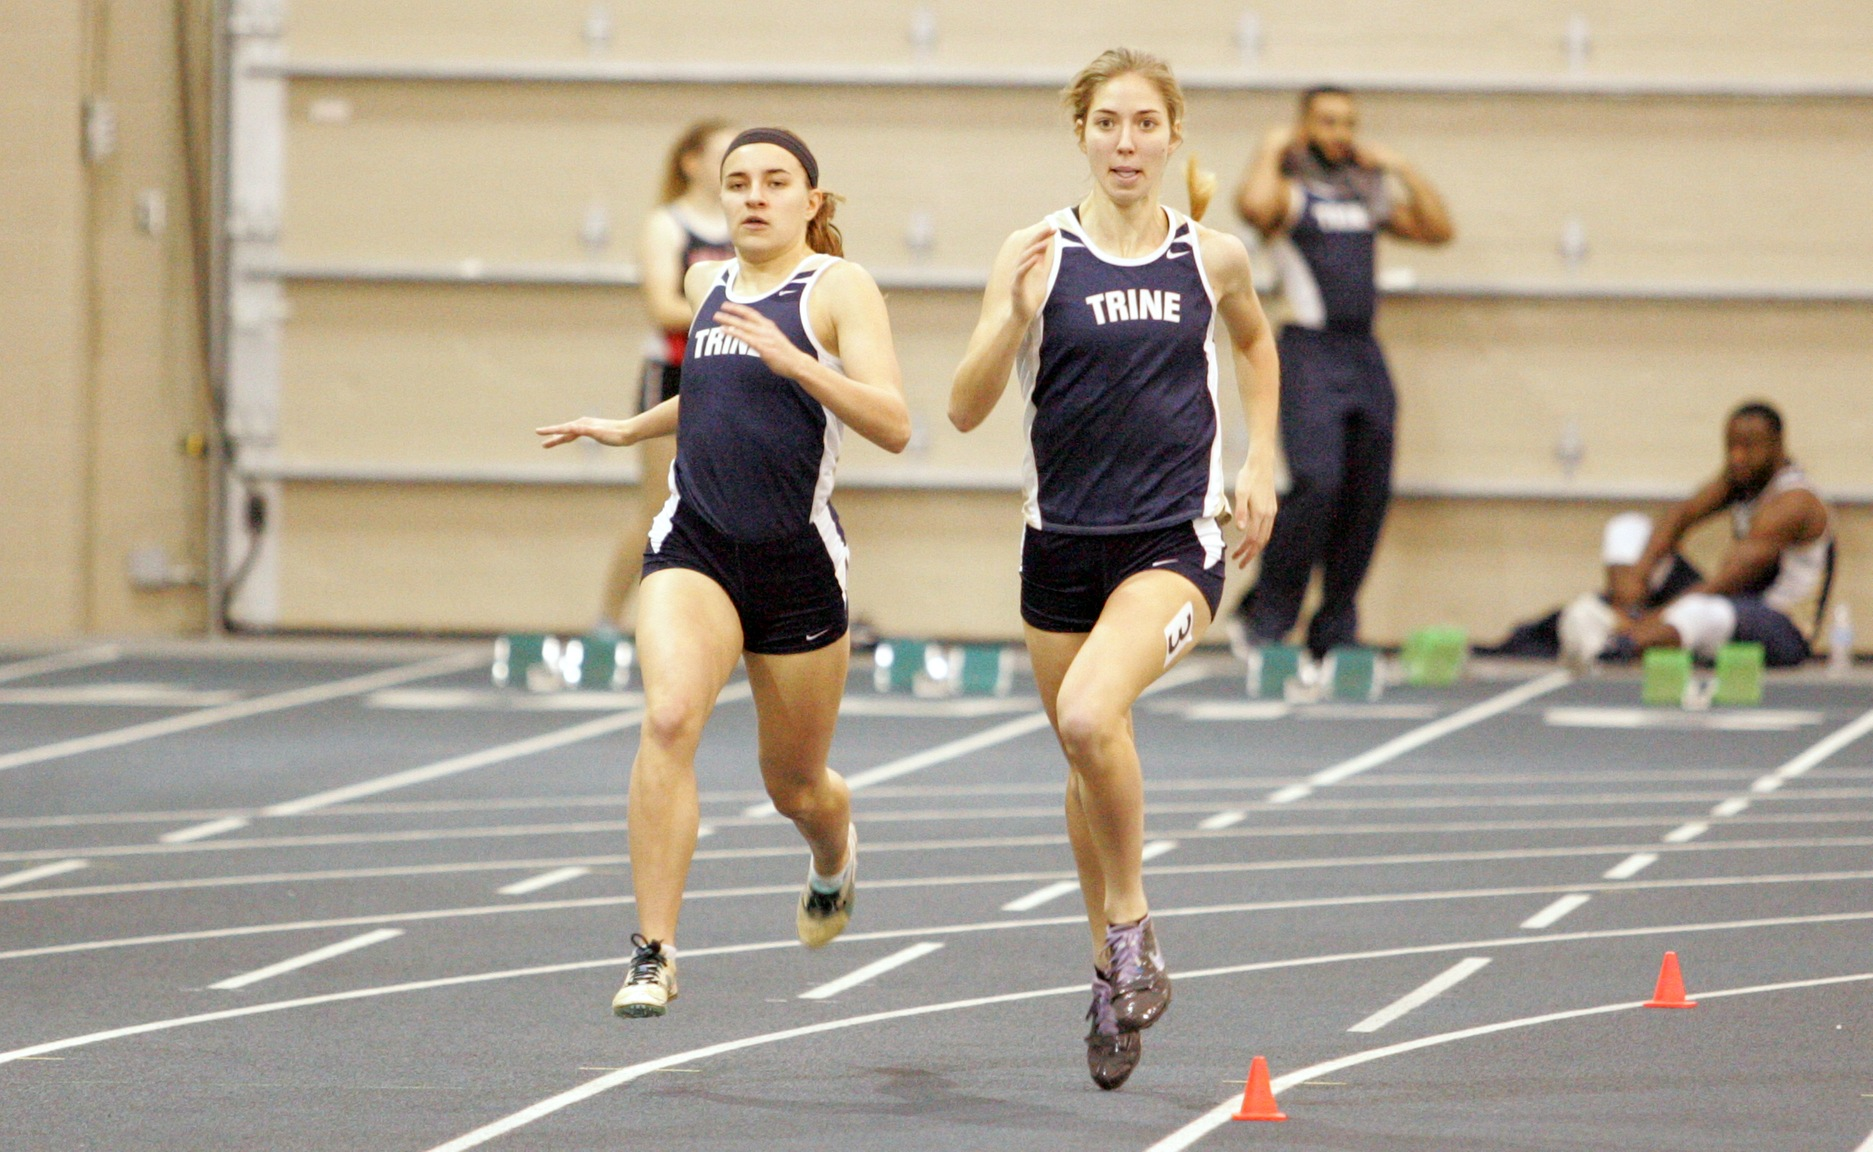 Women's Track and Field Team Earns First Regional Ranking